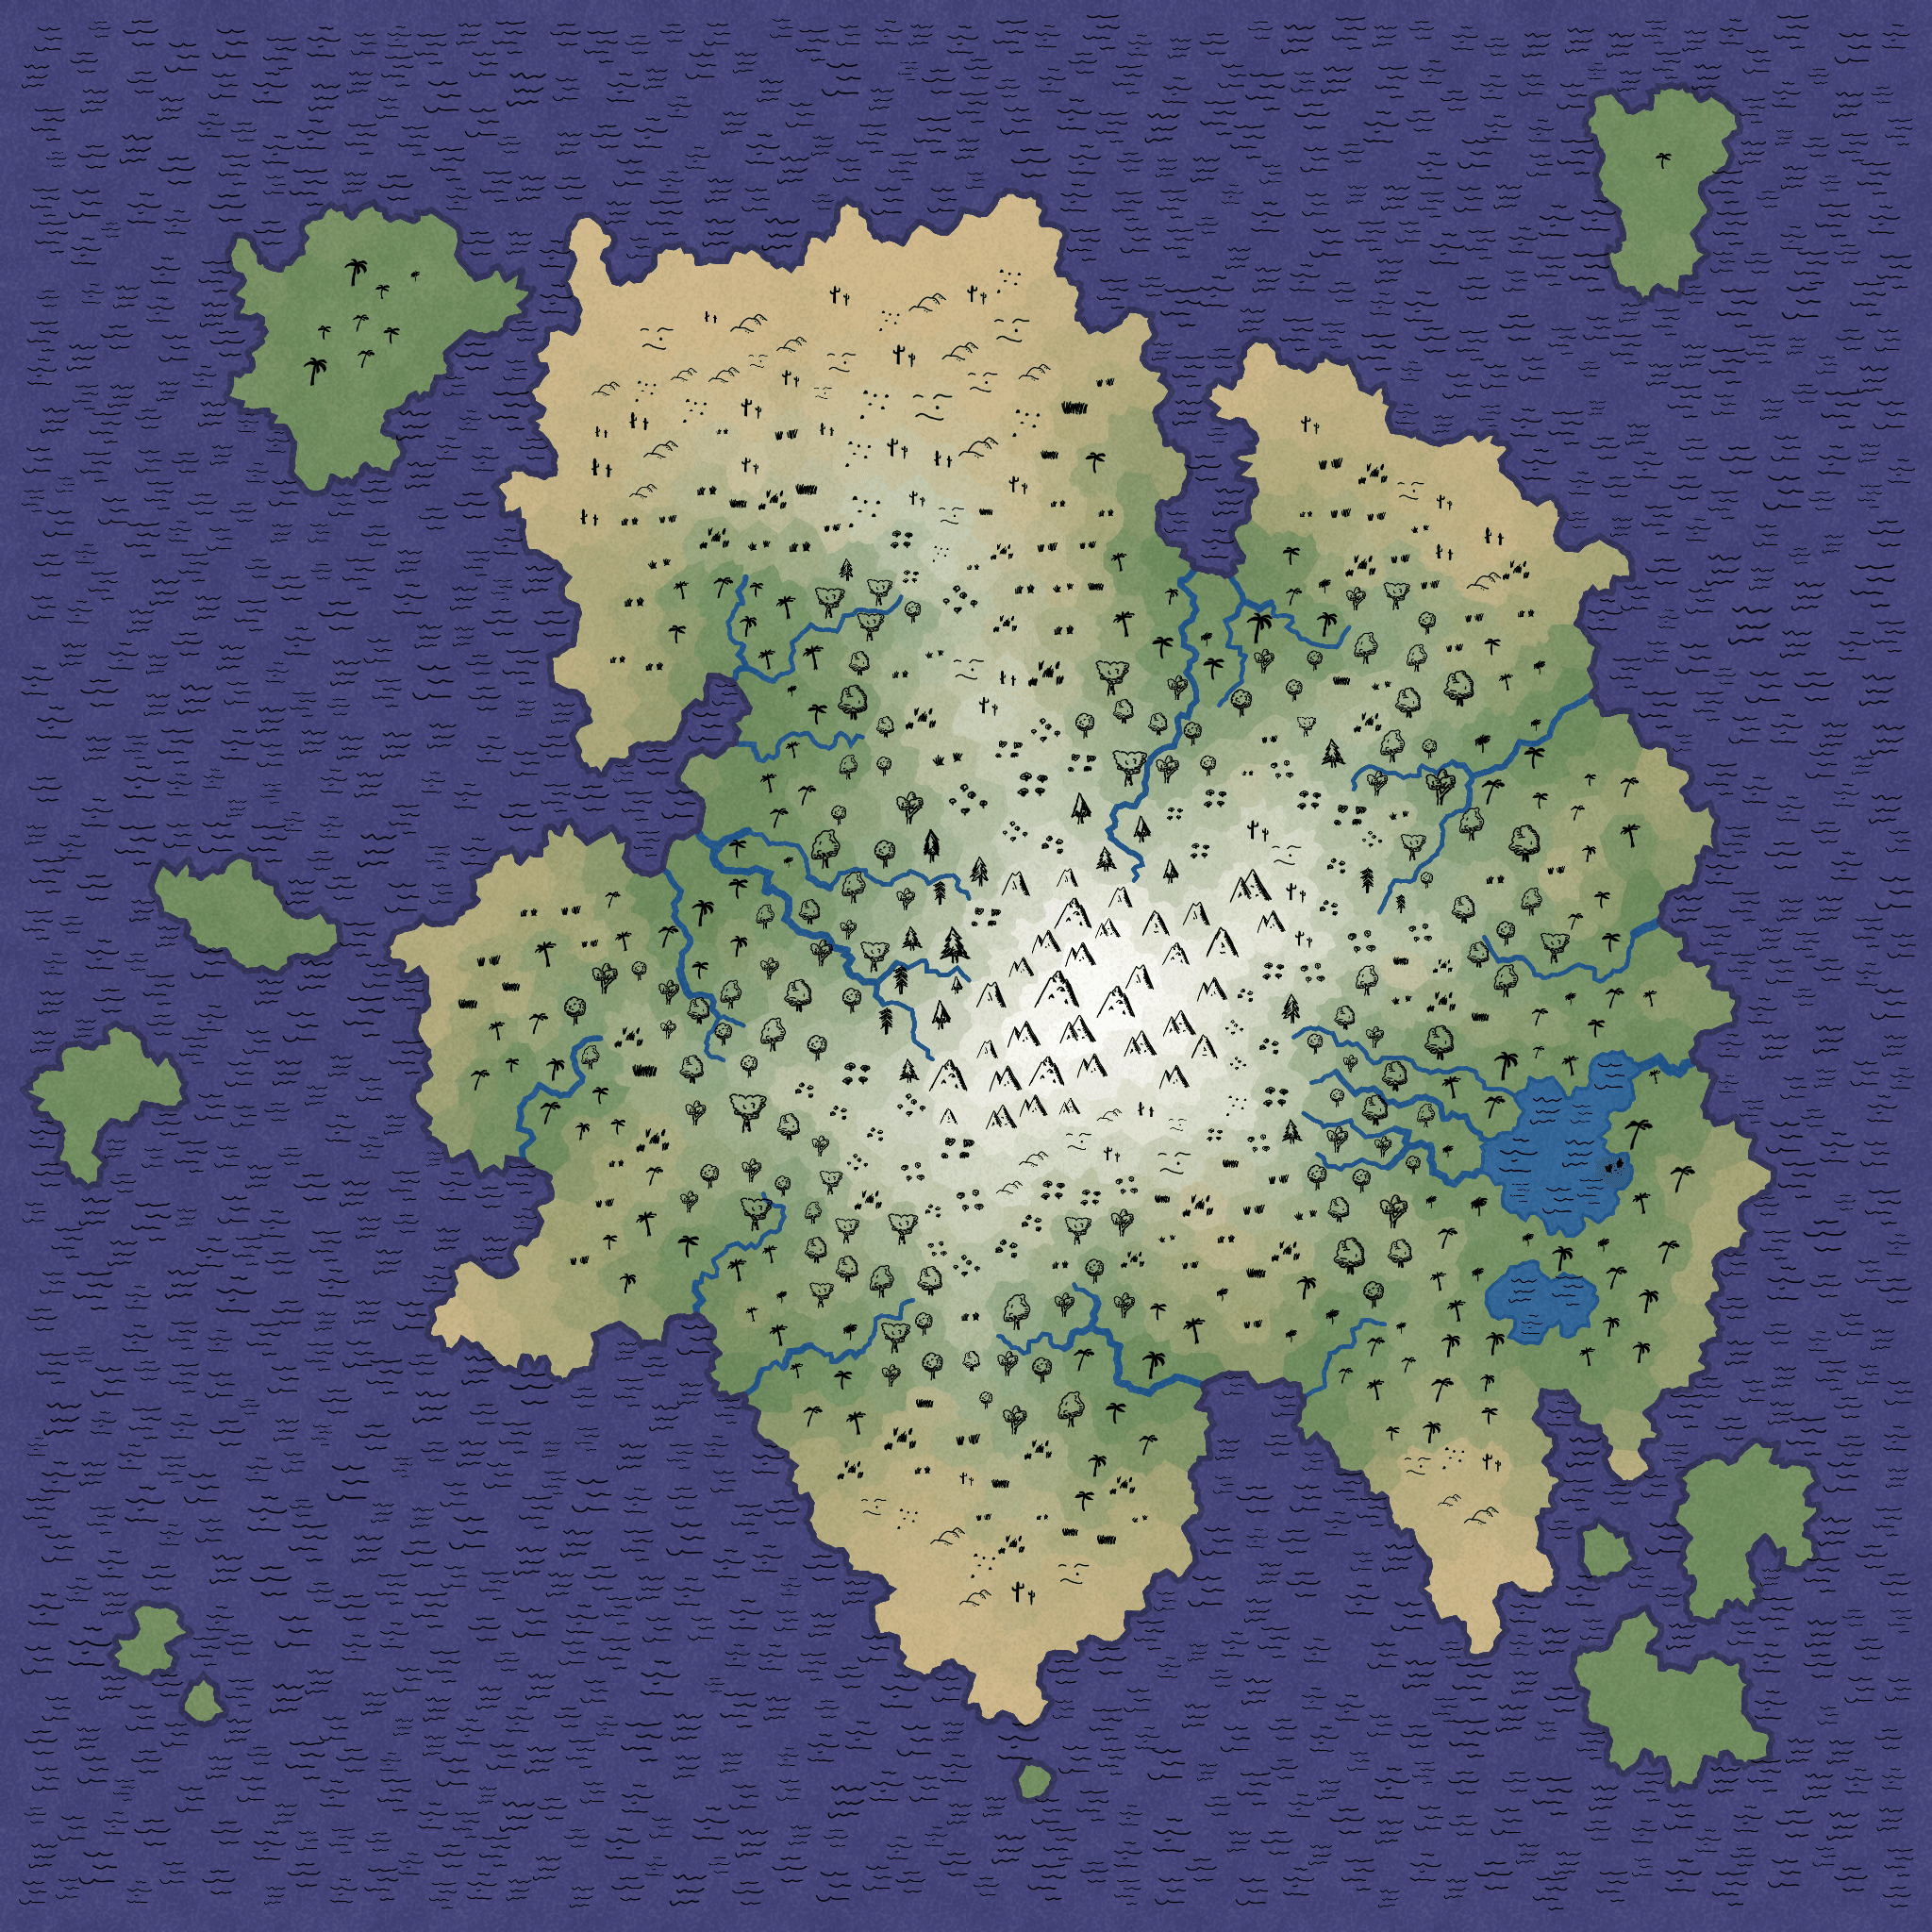 Polygon map generation demo newer version of this project gumiabroncs Image collections